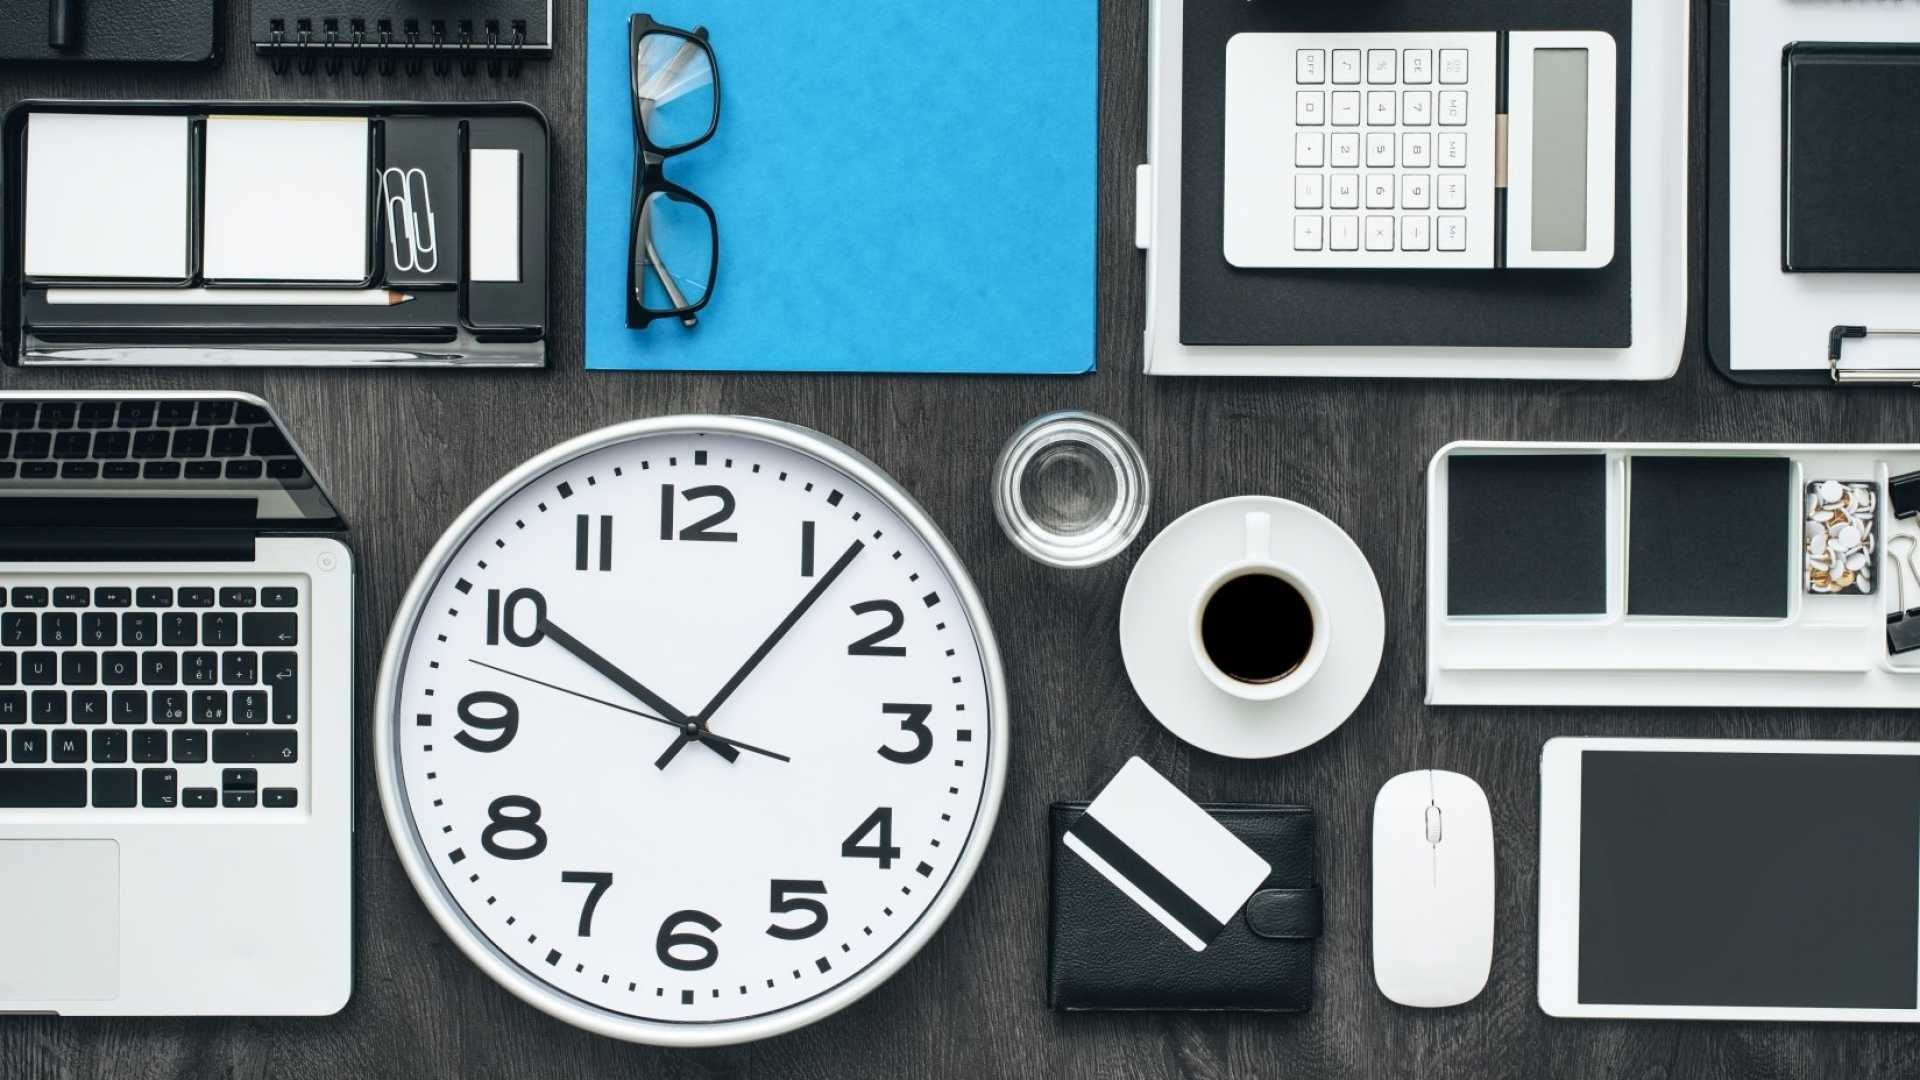 7 Habits That Will Promote Productivity and Improve Your Work